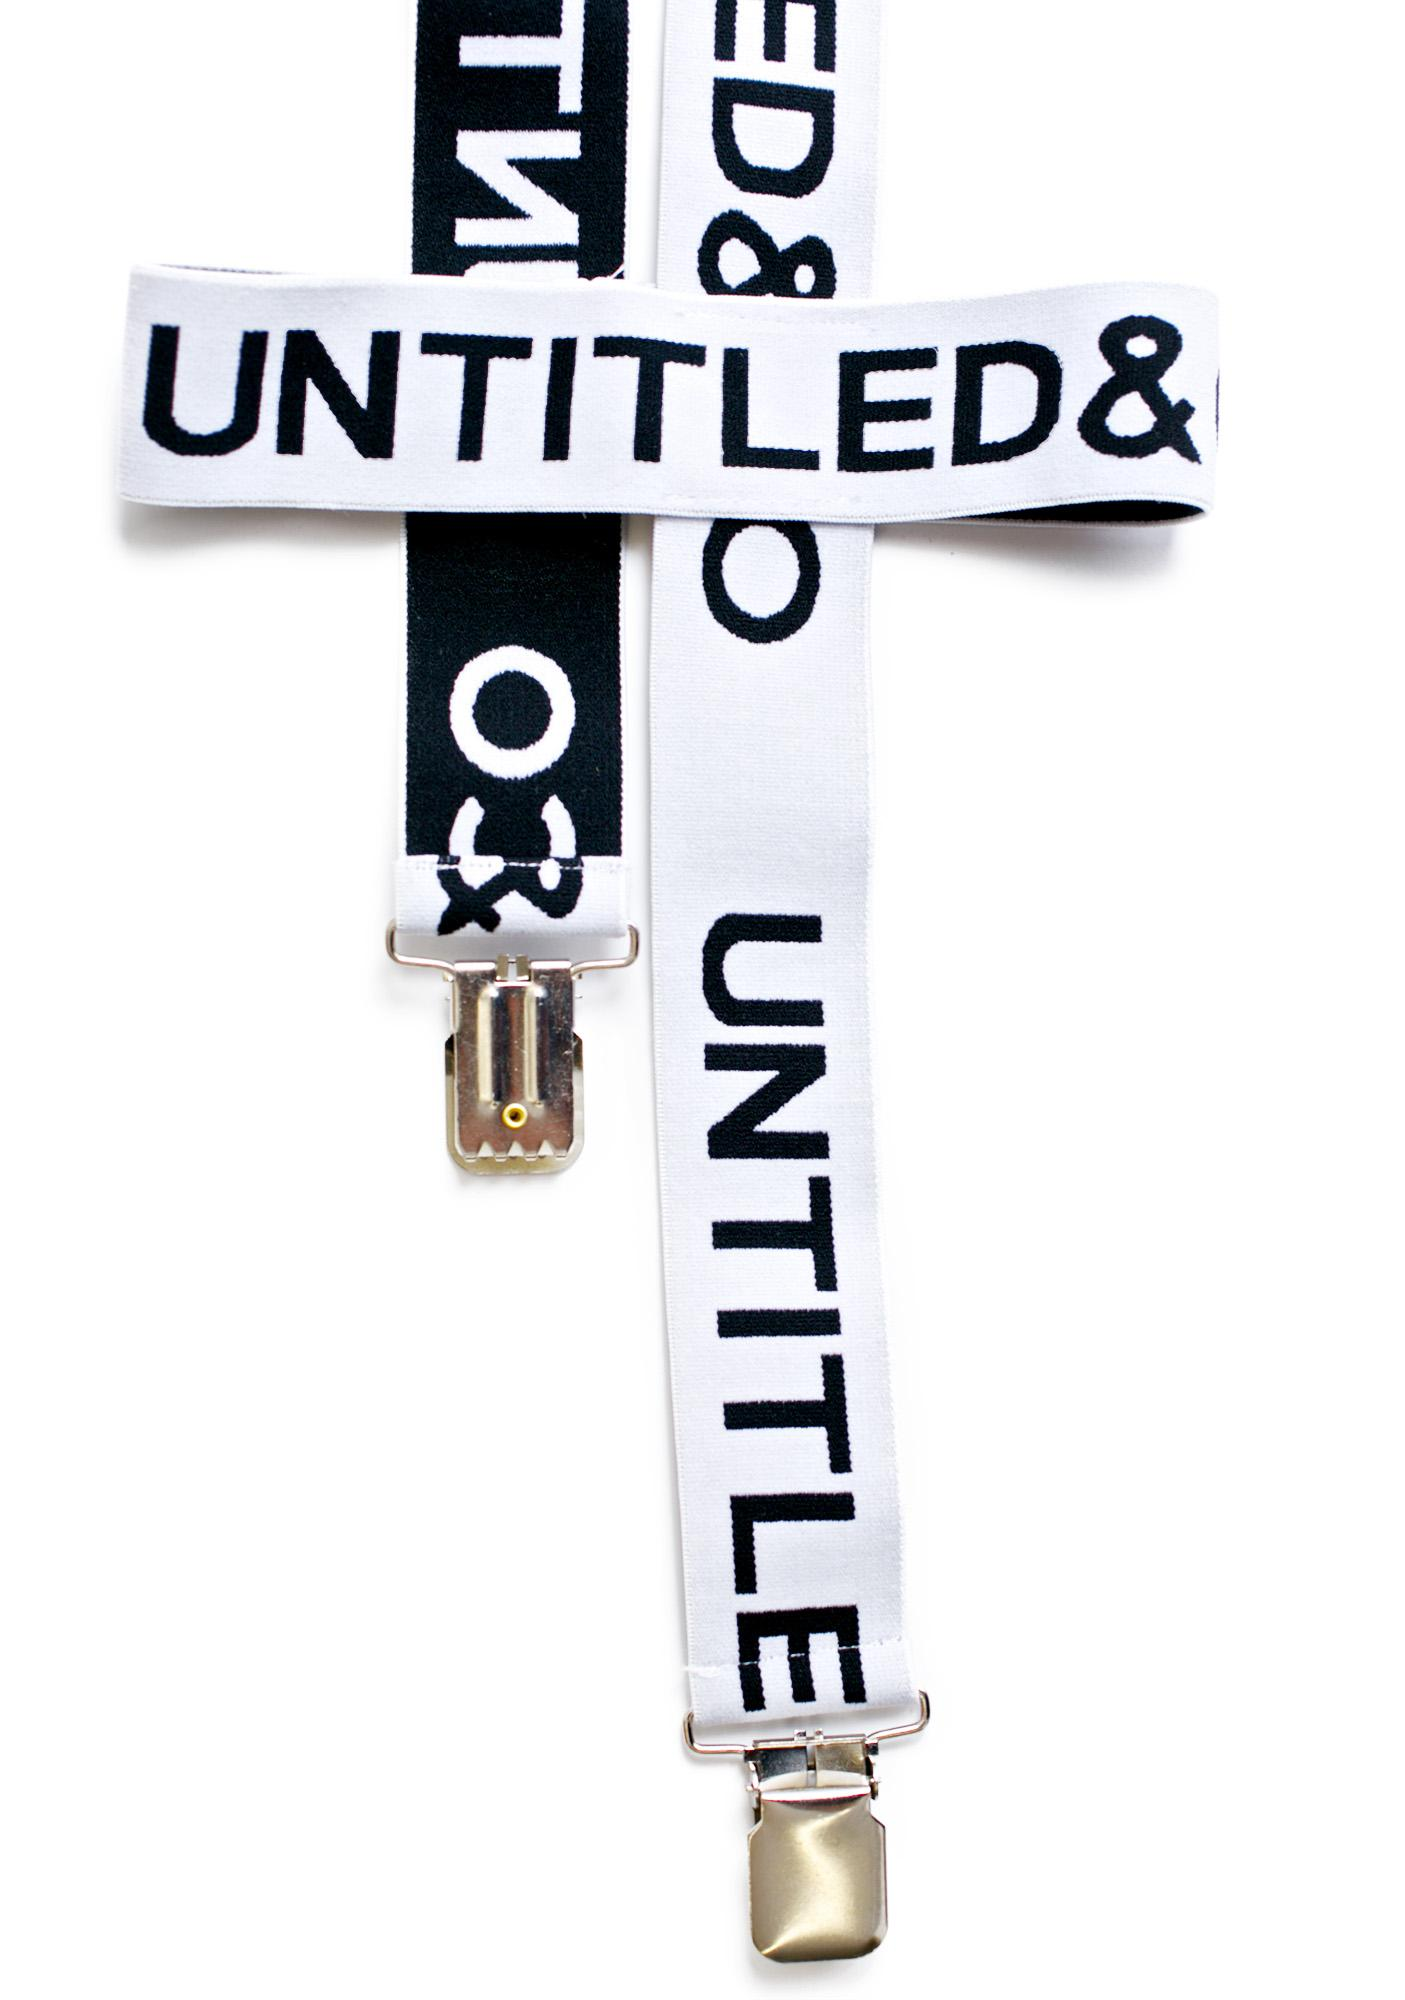 Untitled & Co Garter Harness